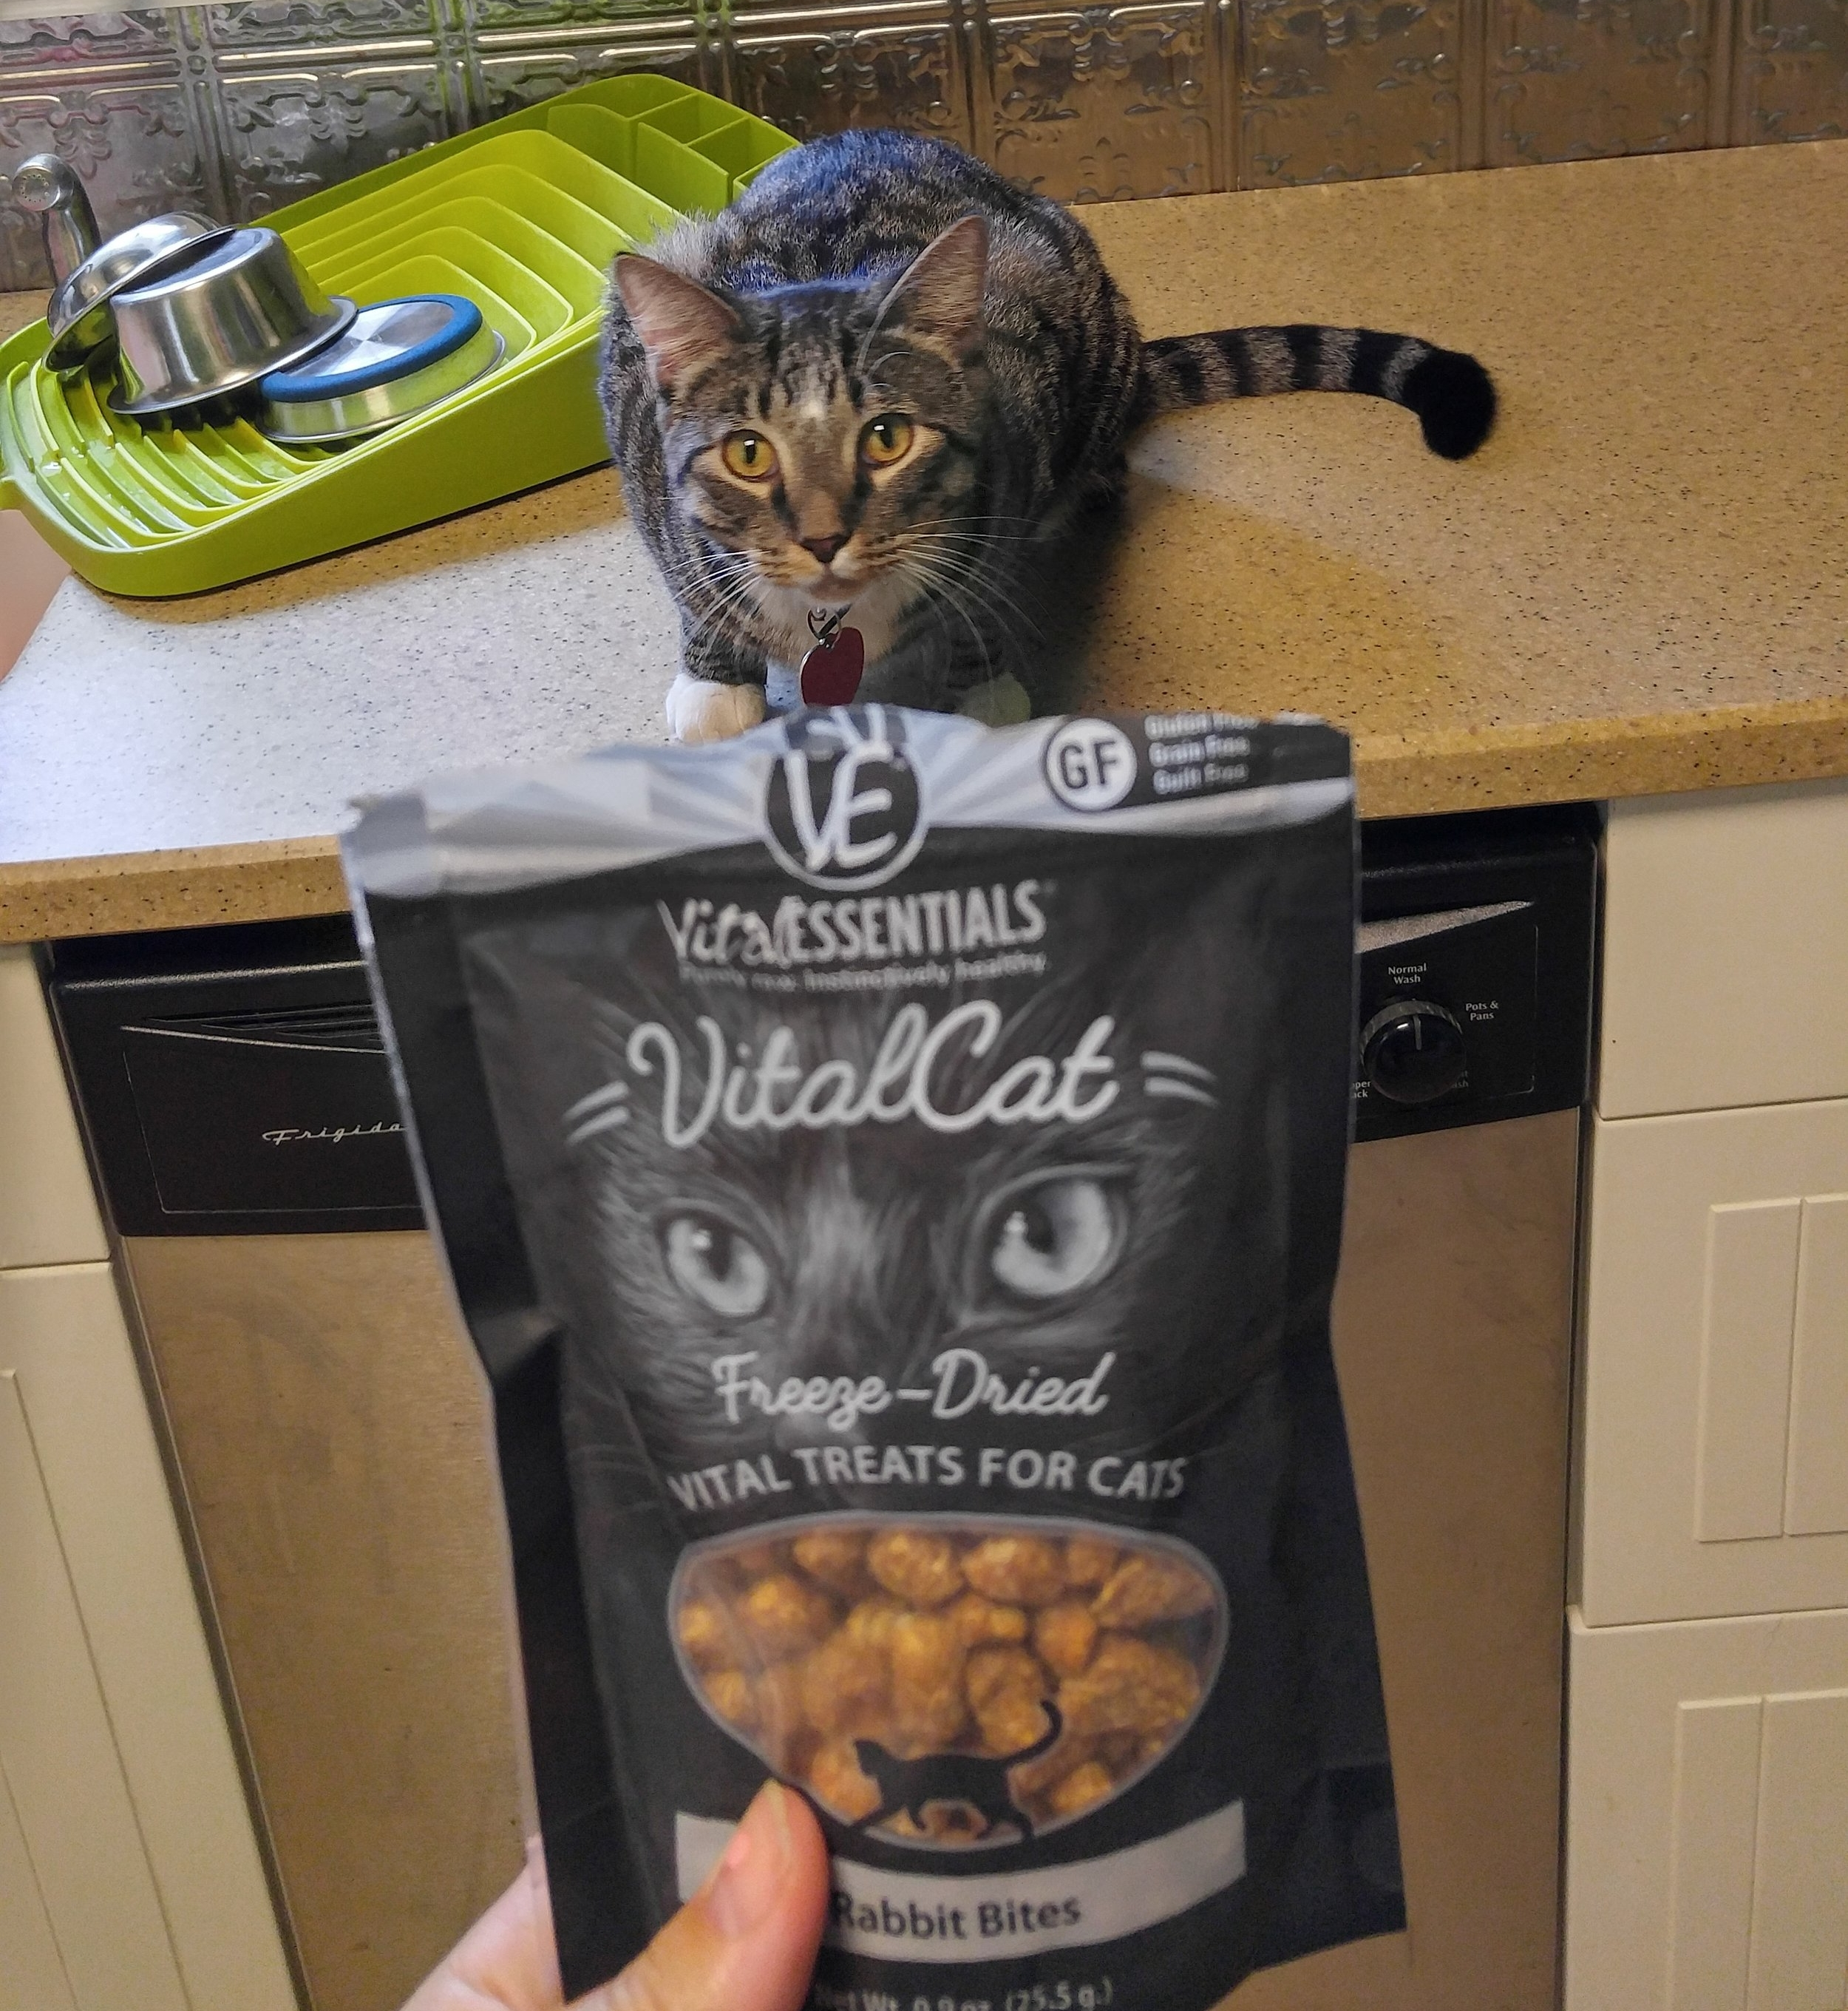 Our cat sitting client, Maynard waits for his freeze dried rabbit treat. He LOVES his raw diet!